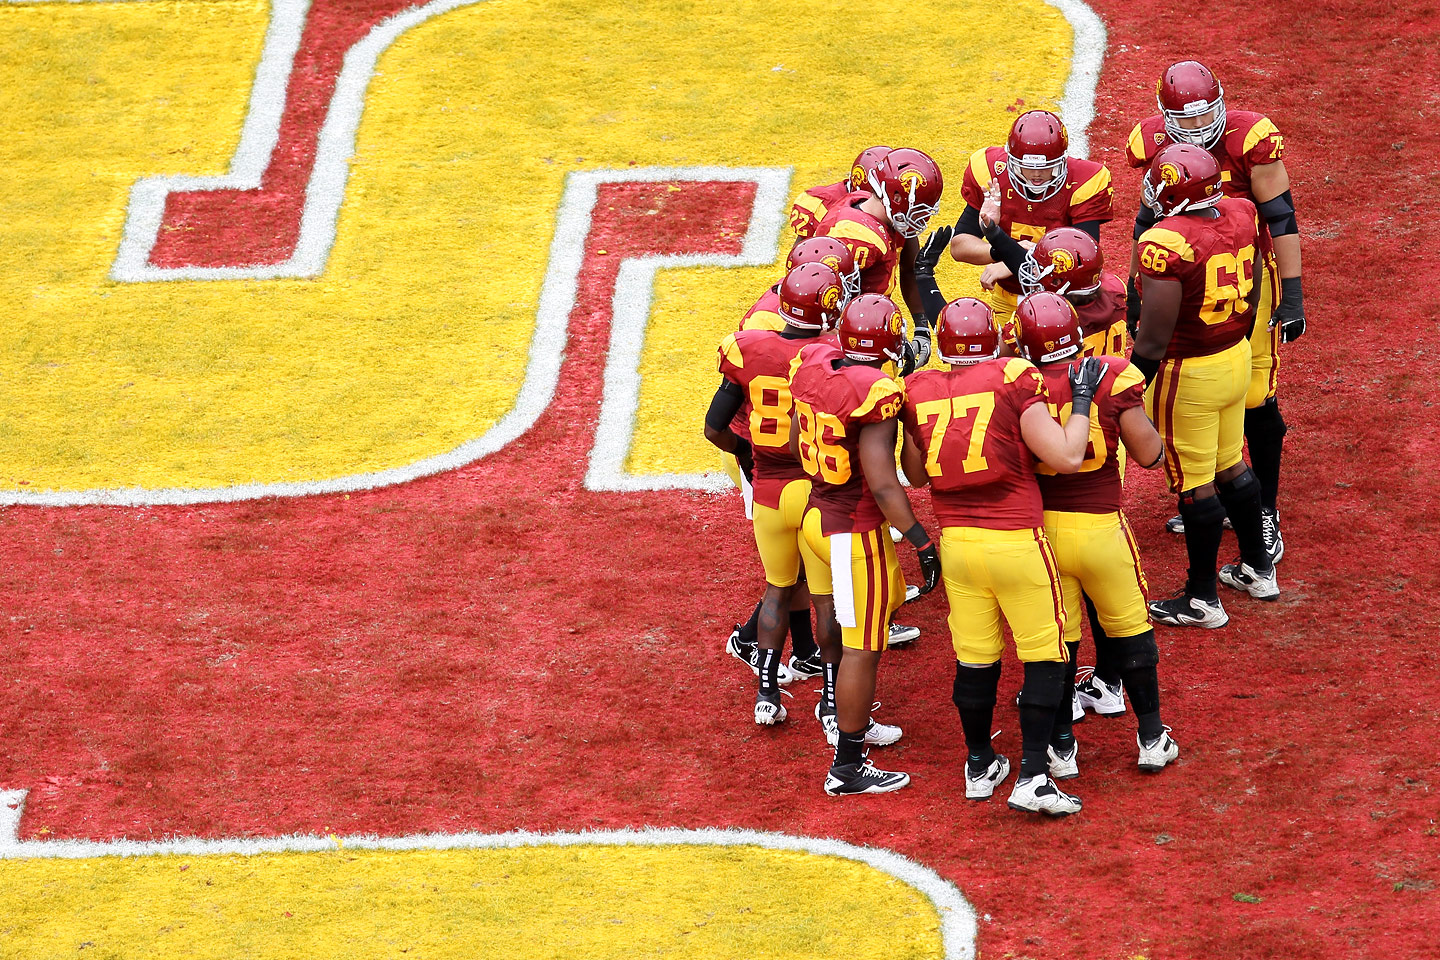 USC offensive huddle